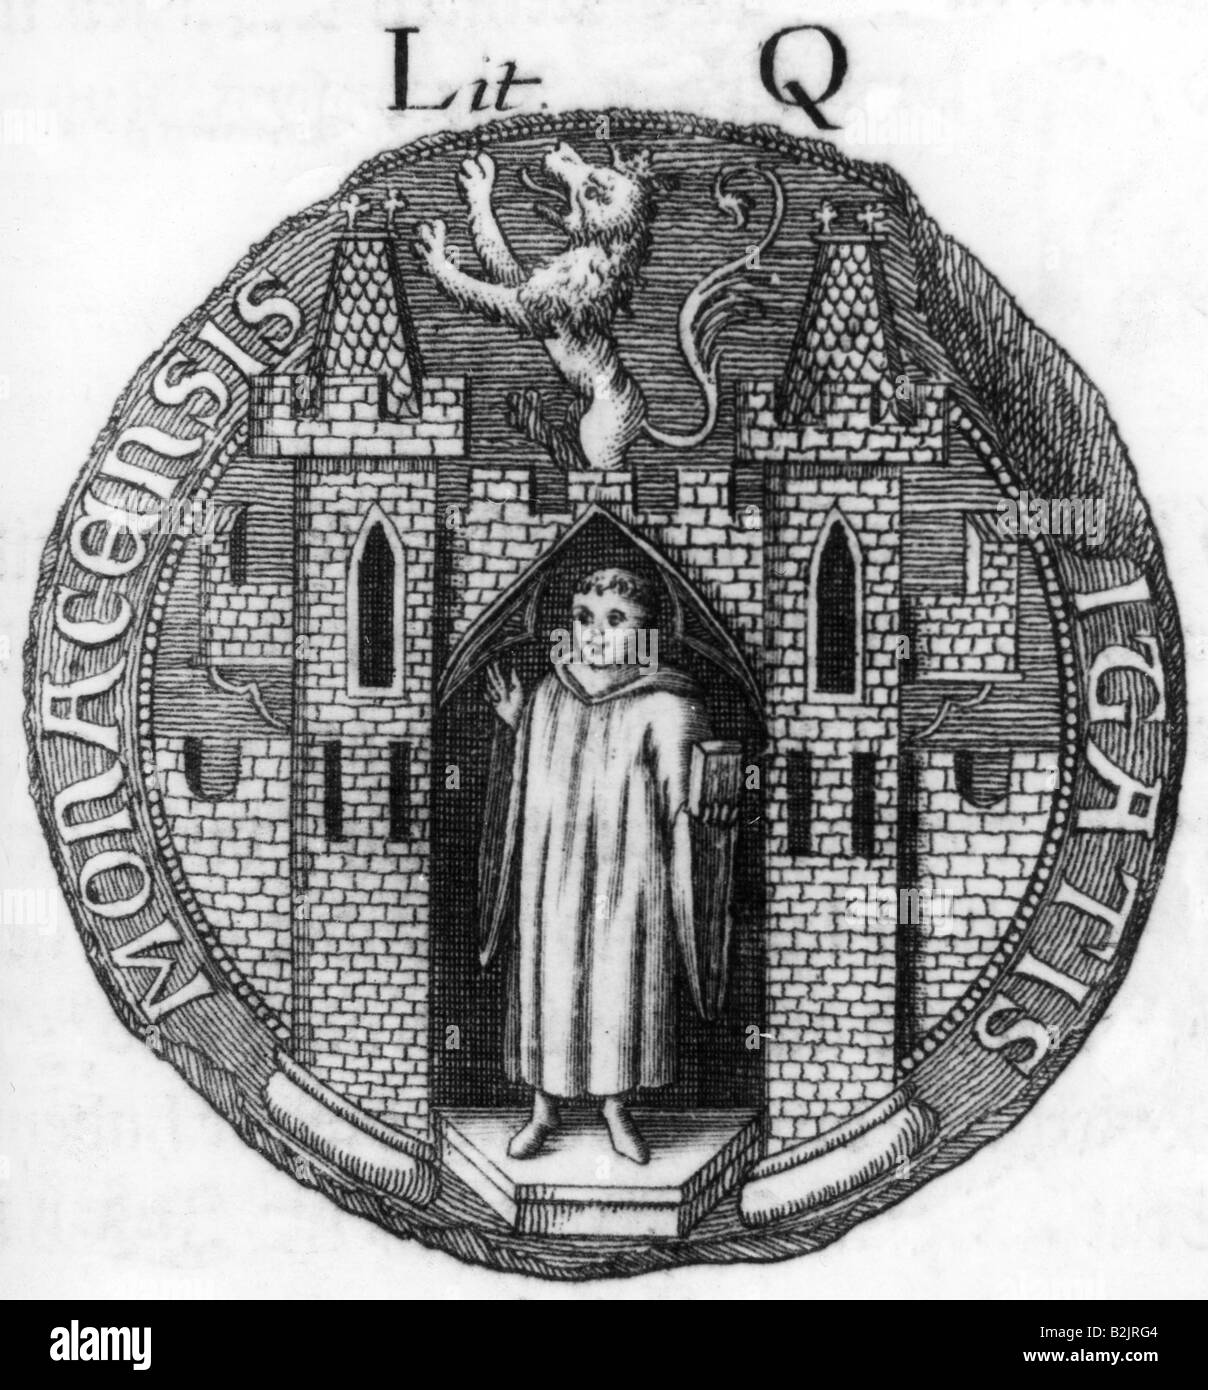 heraldry, seals, Germany, Munich, city seal 1388, copper engraving, 18th  century, monk, middle ages, Bavaria, 14th century, historic, historical,  medieval, ...